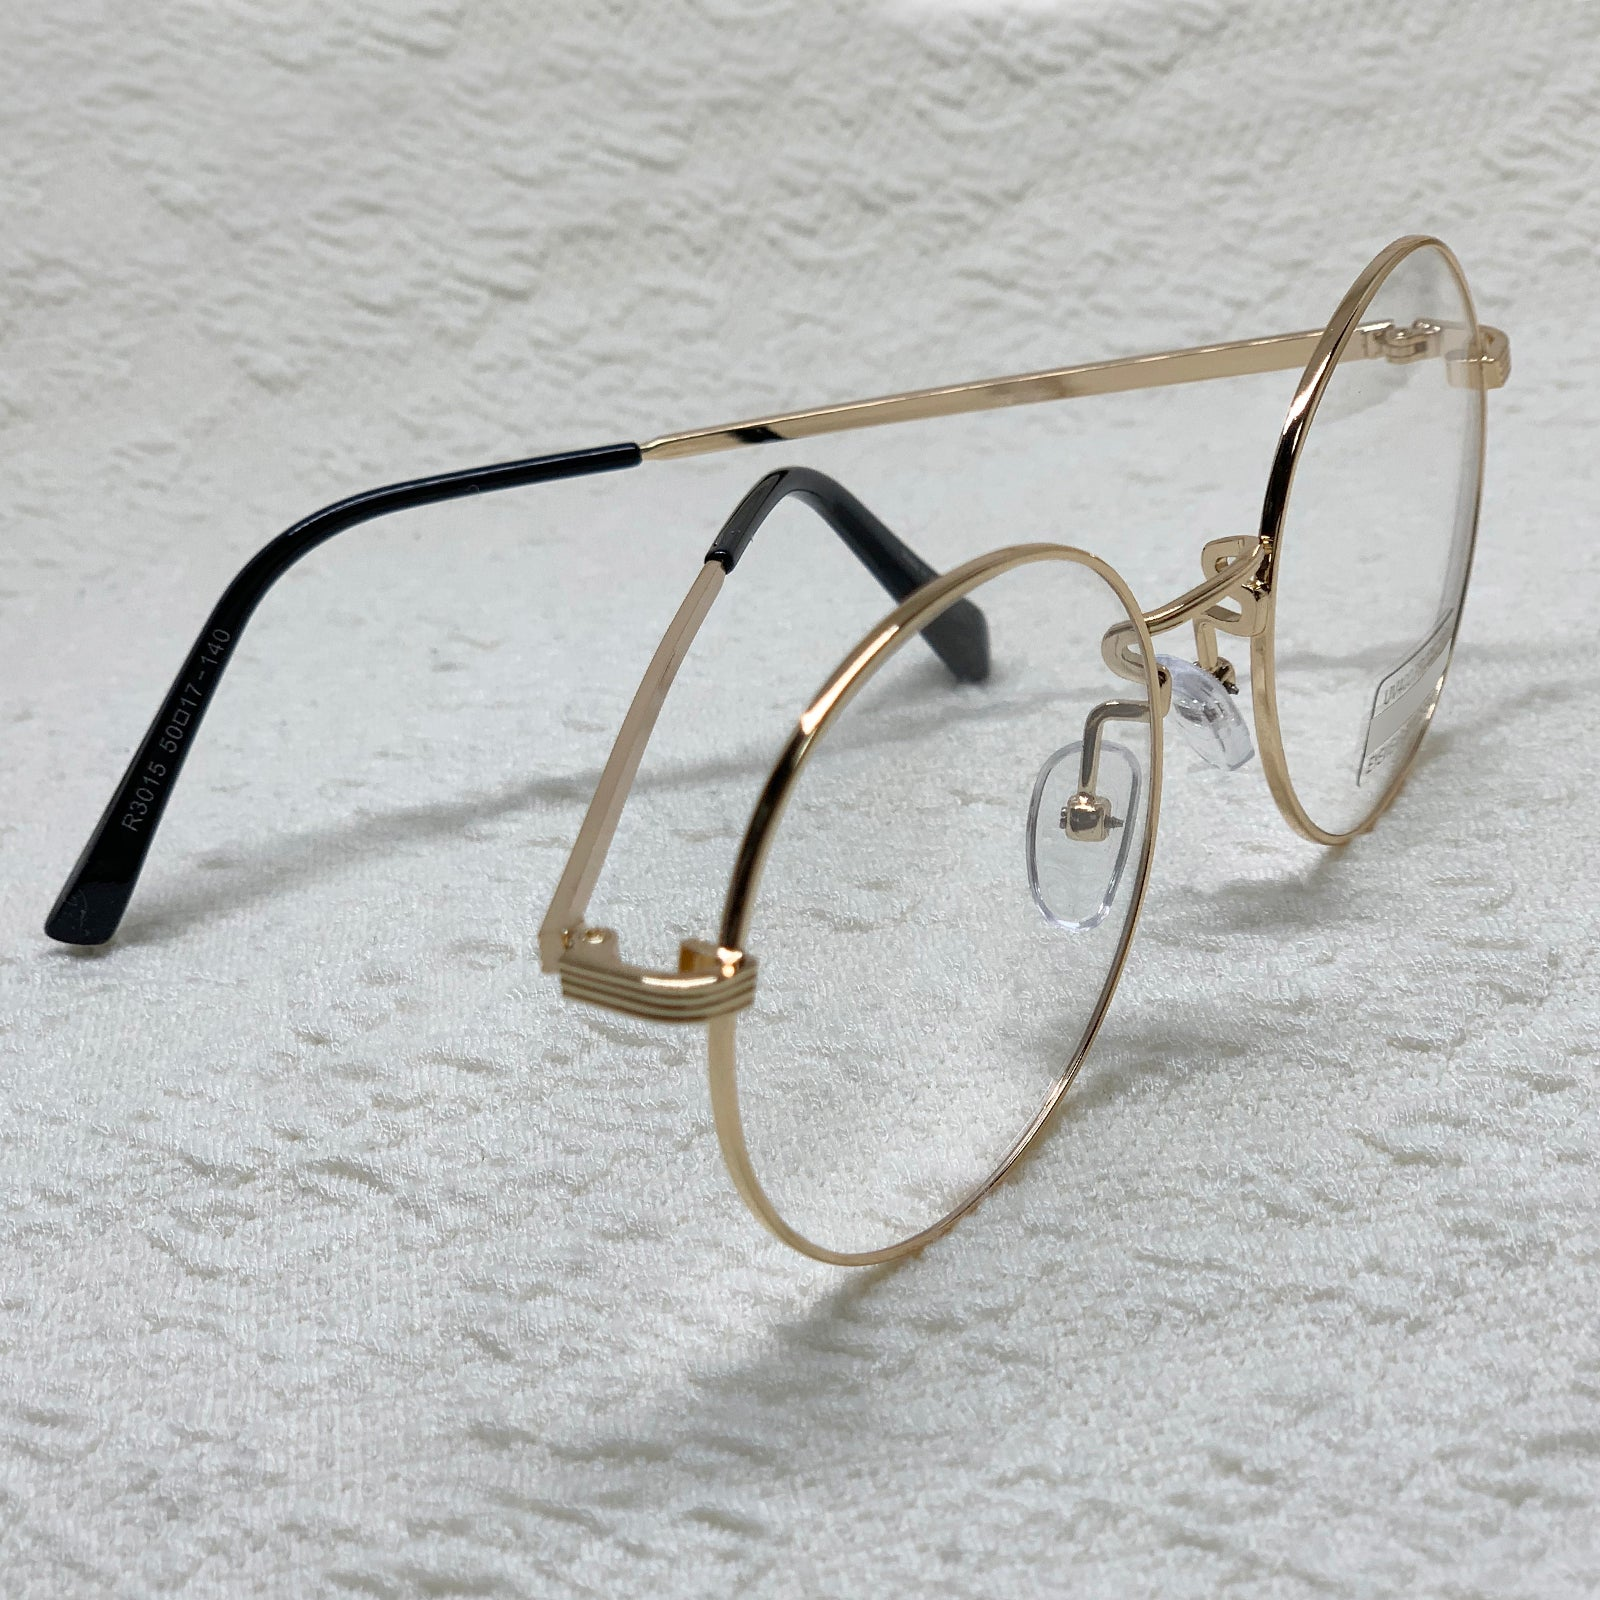 ENCACC Classic Round Retro Eye glasses Clear Lens Glasses Non Prescription Metal Frame 3015 - ENCACC